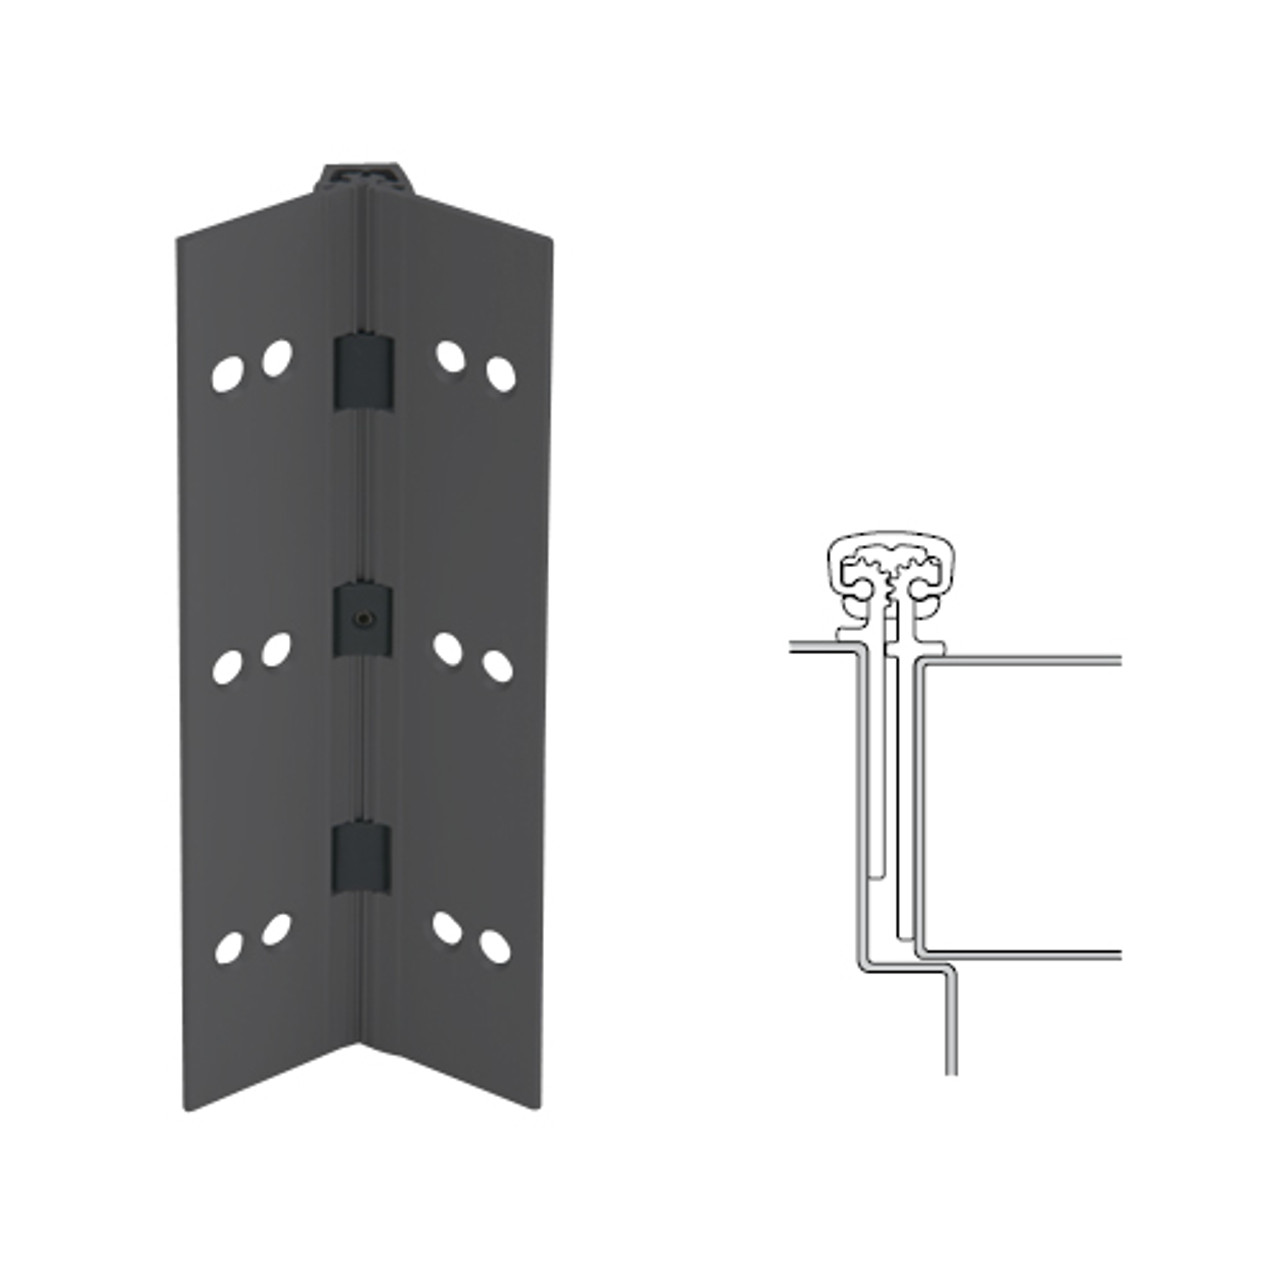 026XY-315AN-120 IVES Full Mortise Continuous Geared Hinges in Anodized Black